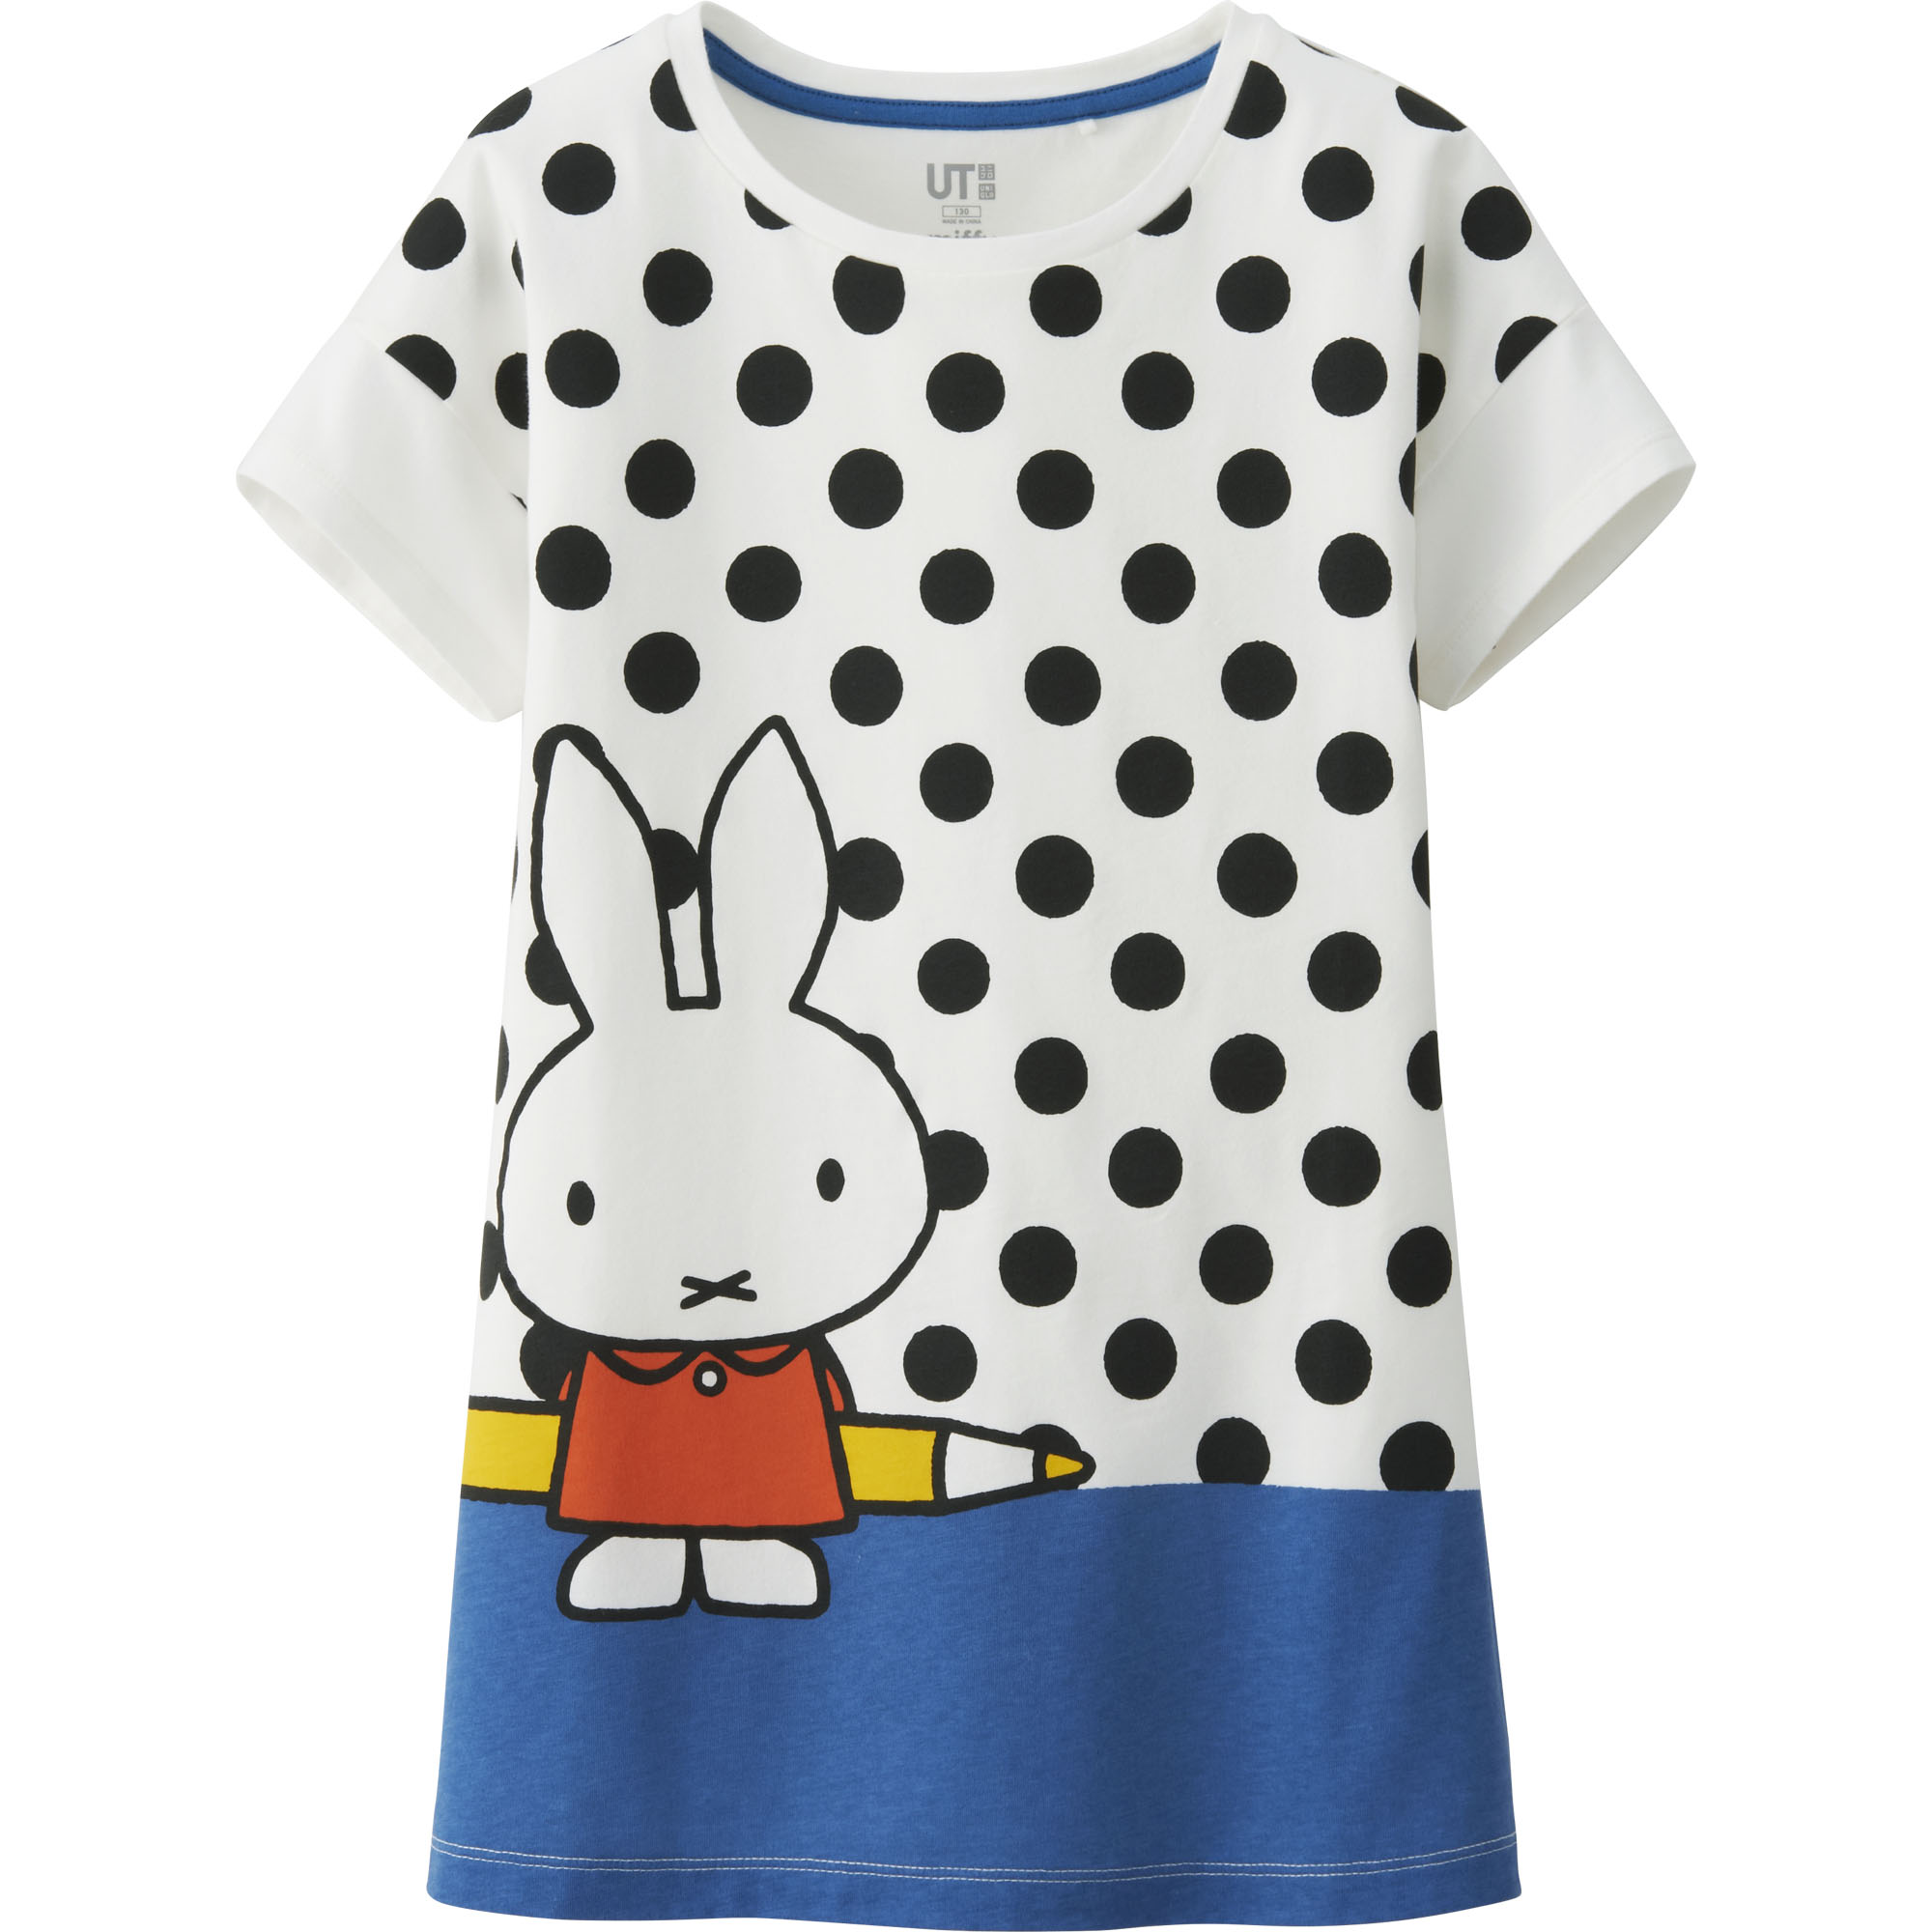 160023 miffy%20x%20uniqlo%20girls%20%20ut %20a %c2%a37.90 186710 original 1426848133